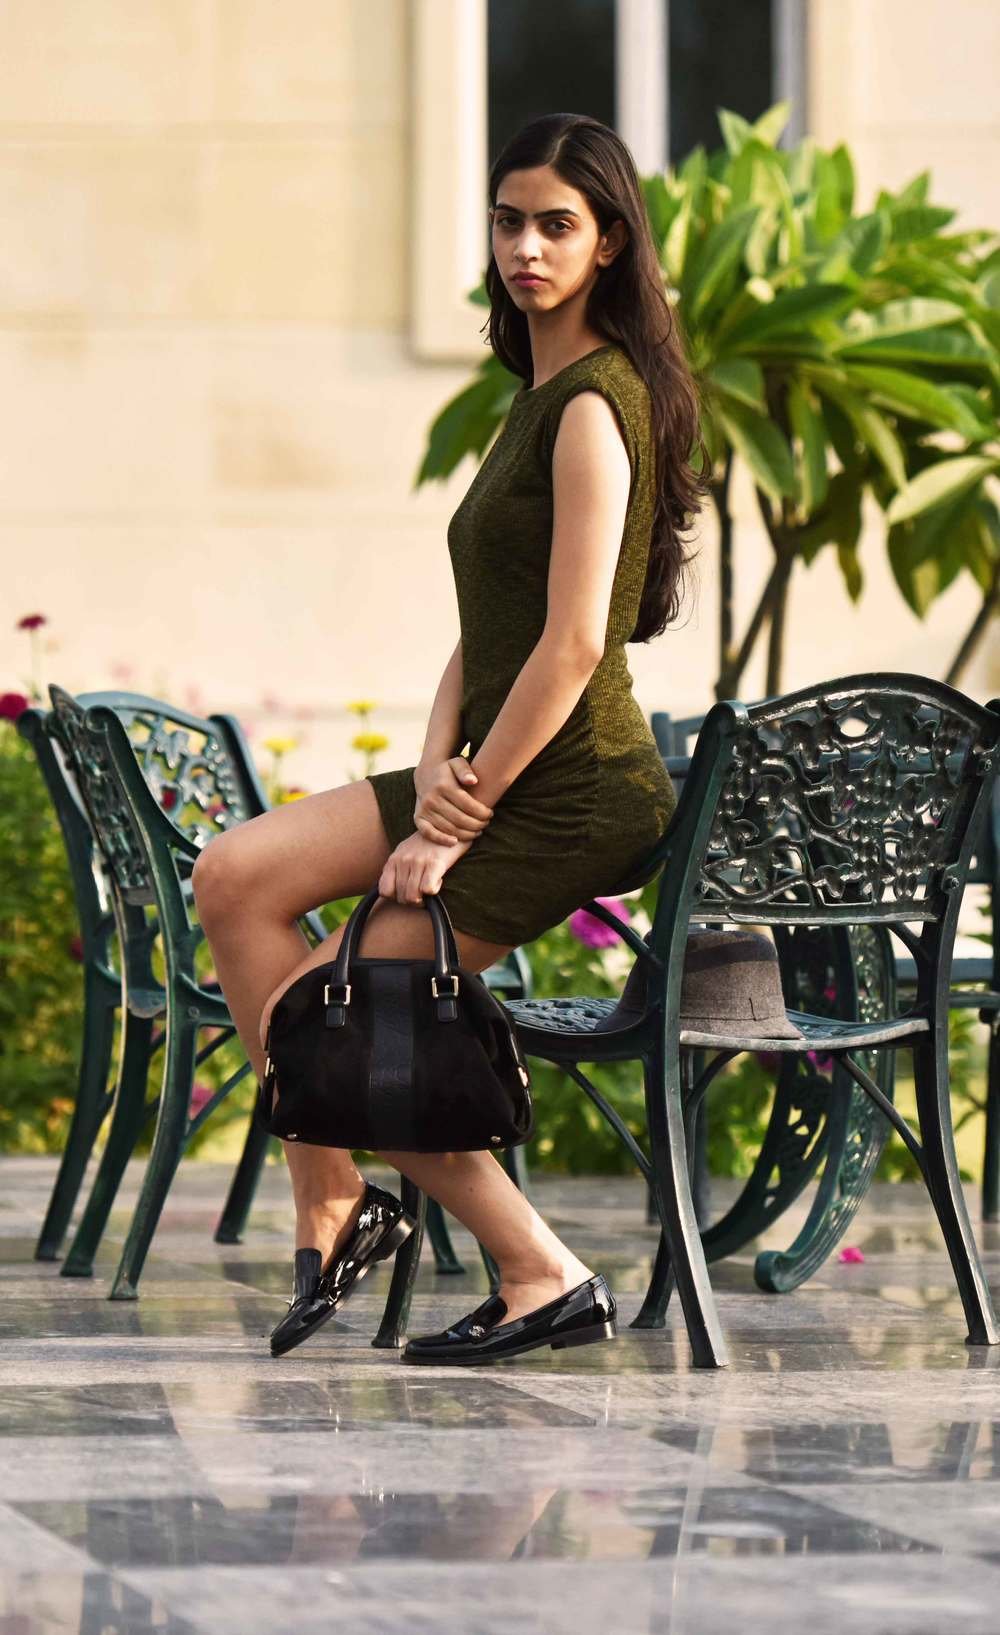 A semi formal look: a basic sheath dress with a black Gucci bag and Chanel loafers. Model: Mannat Dhaliwal, Image©sourcingstyle.com